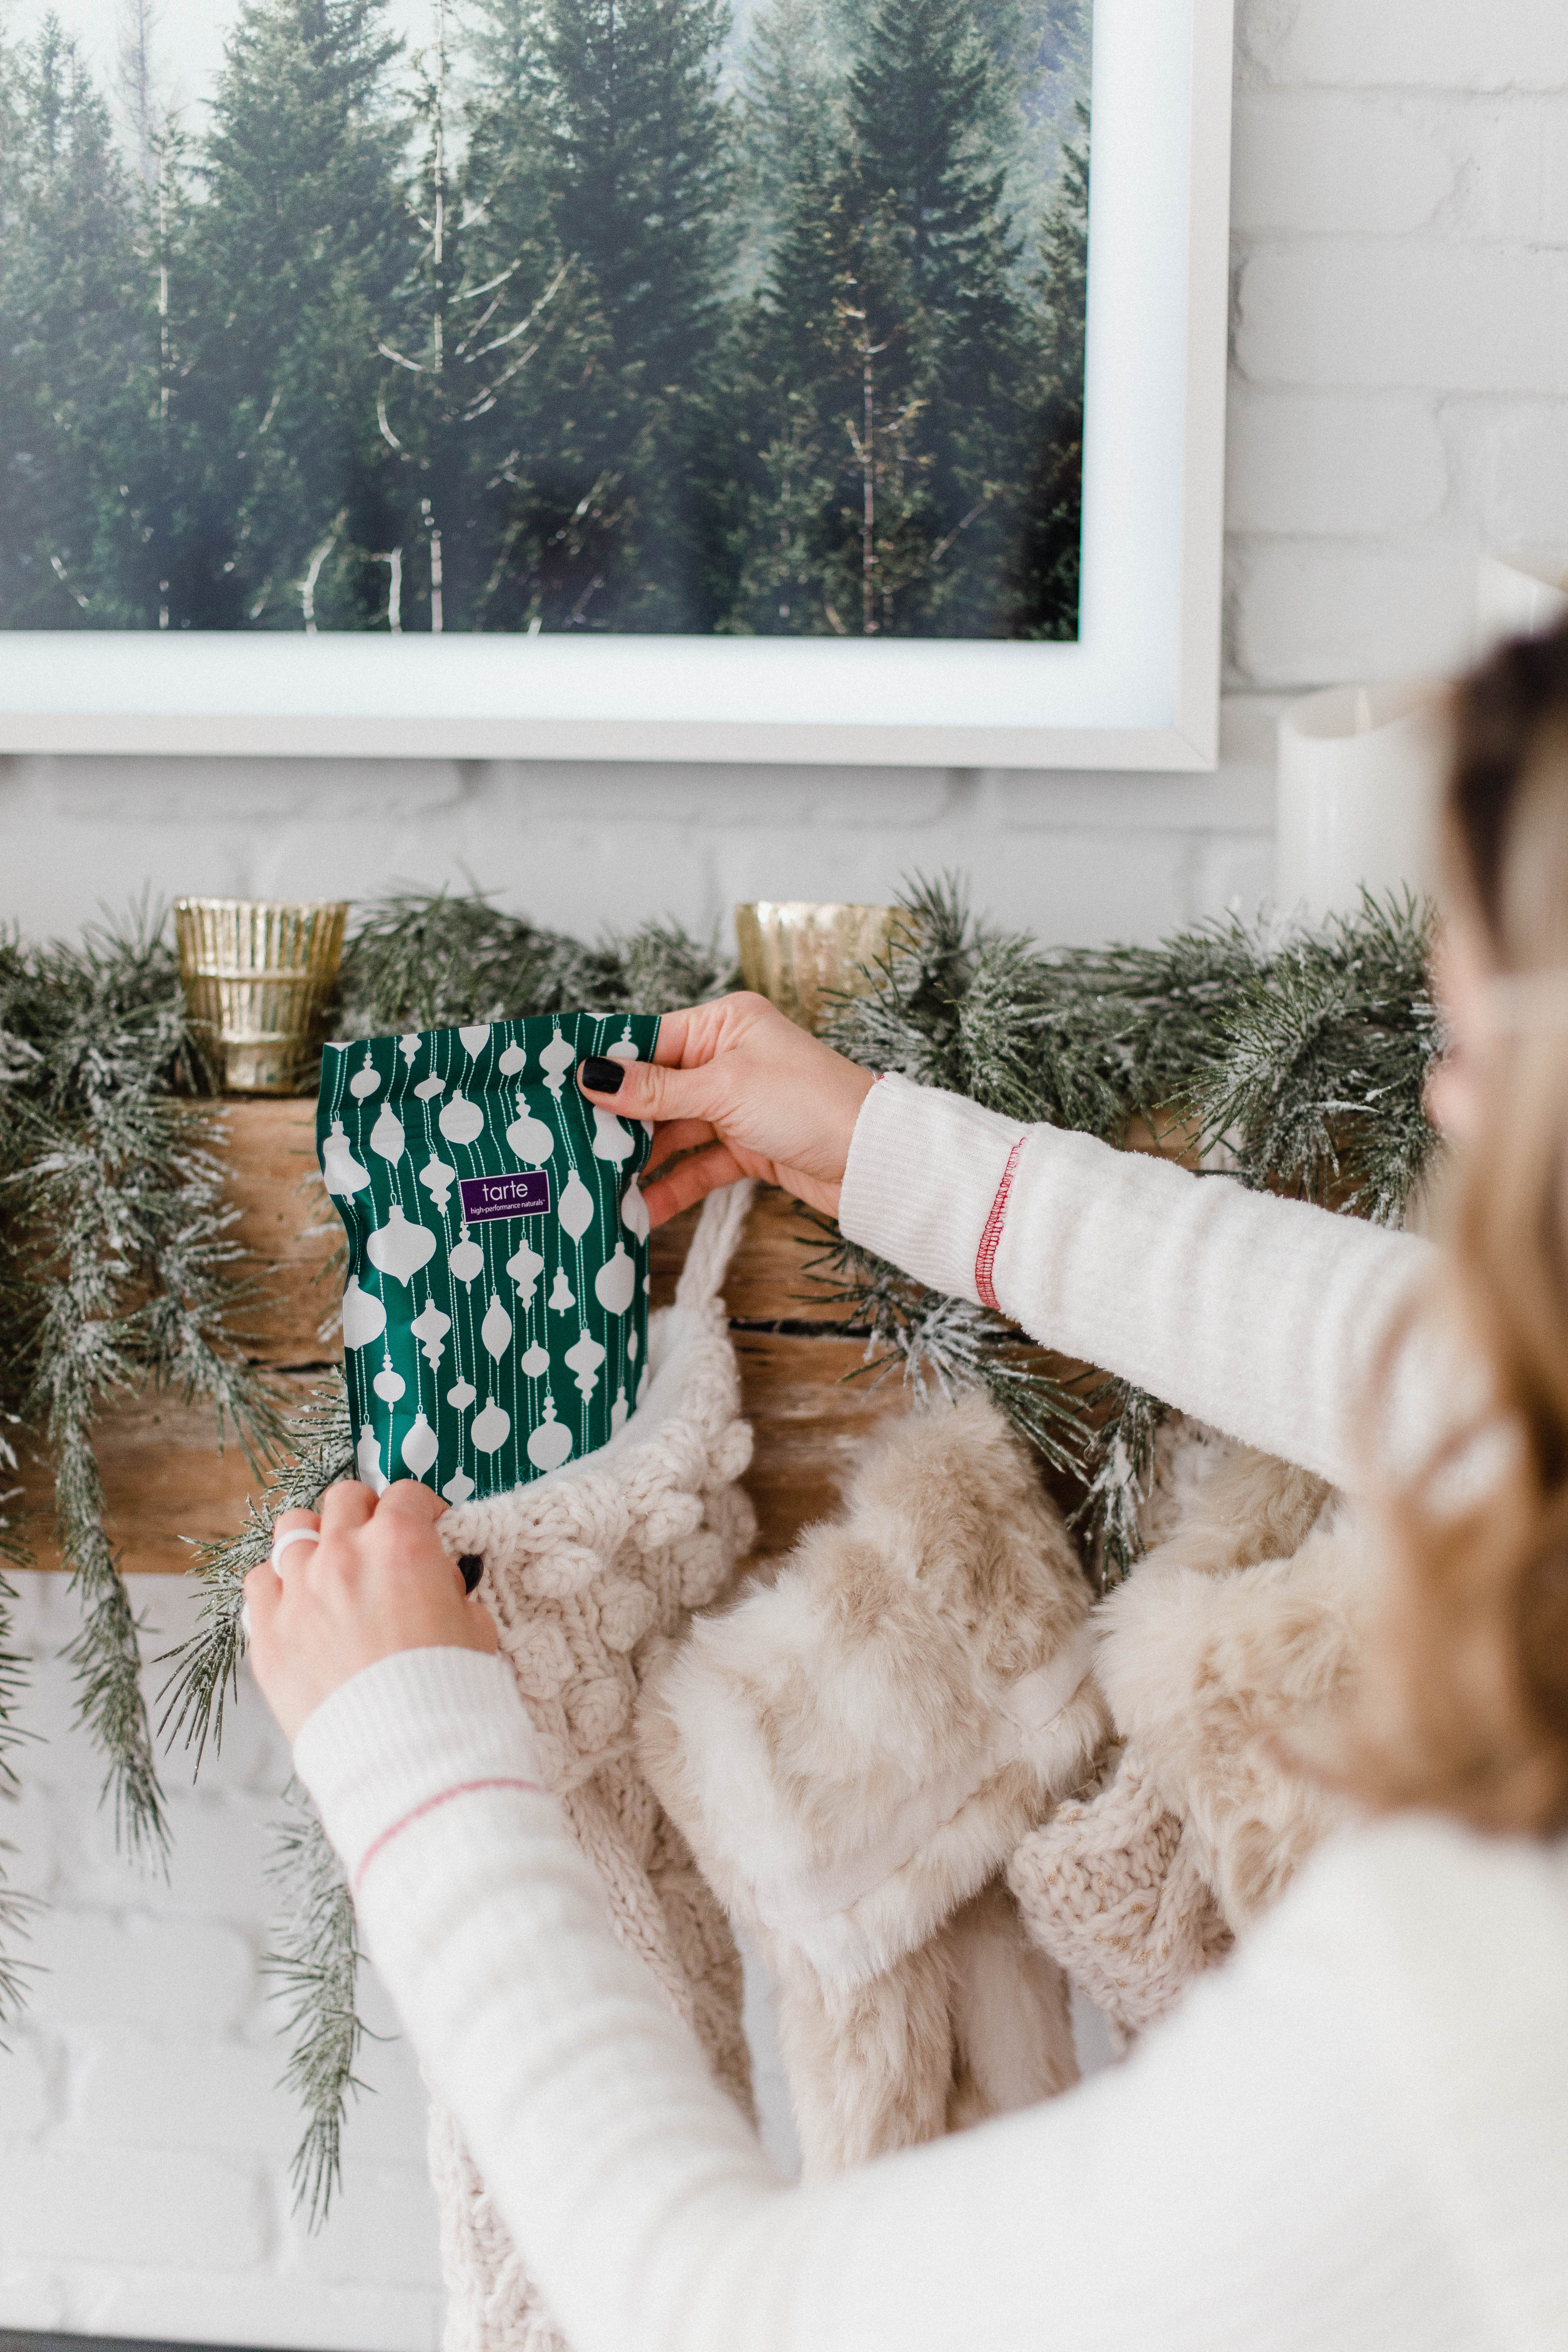 Connecticut life and style blogger Lauren McBride shares last minute beauty stocking stuffer ideas featuring items from QVC.